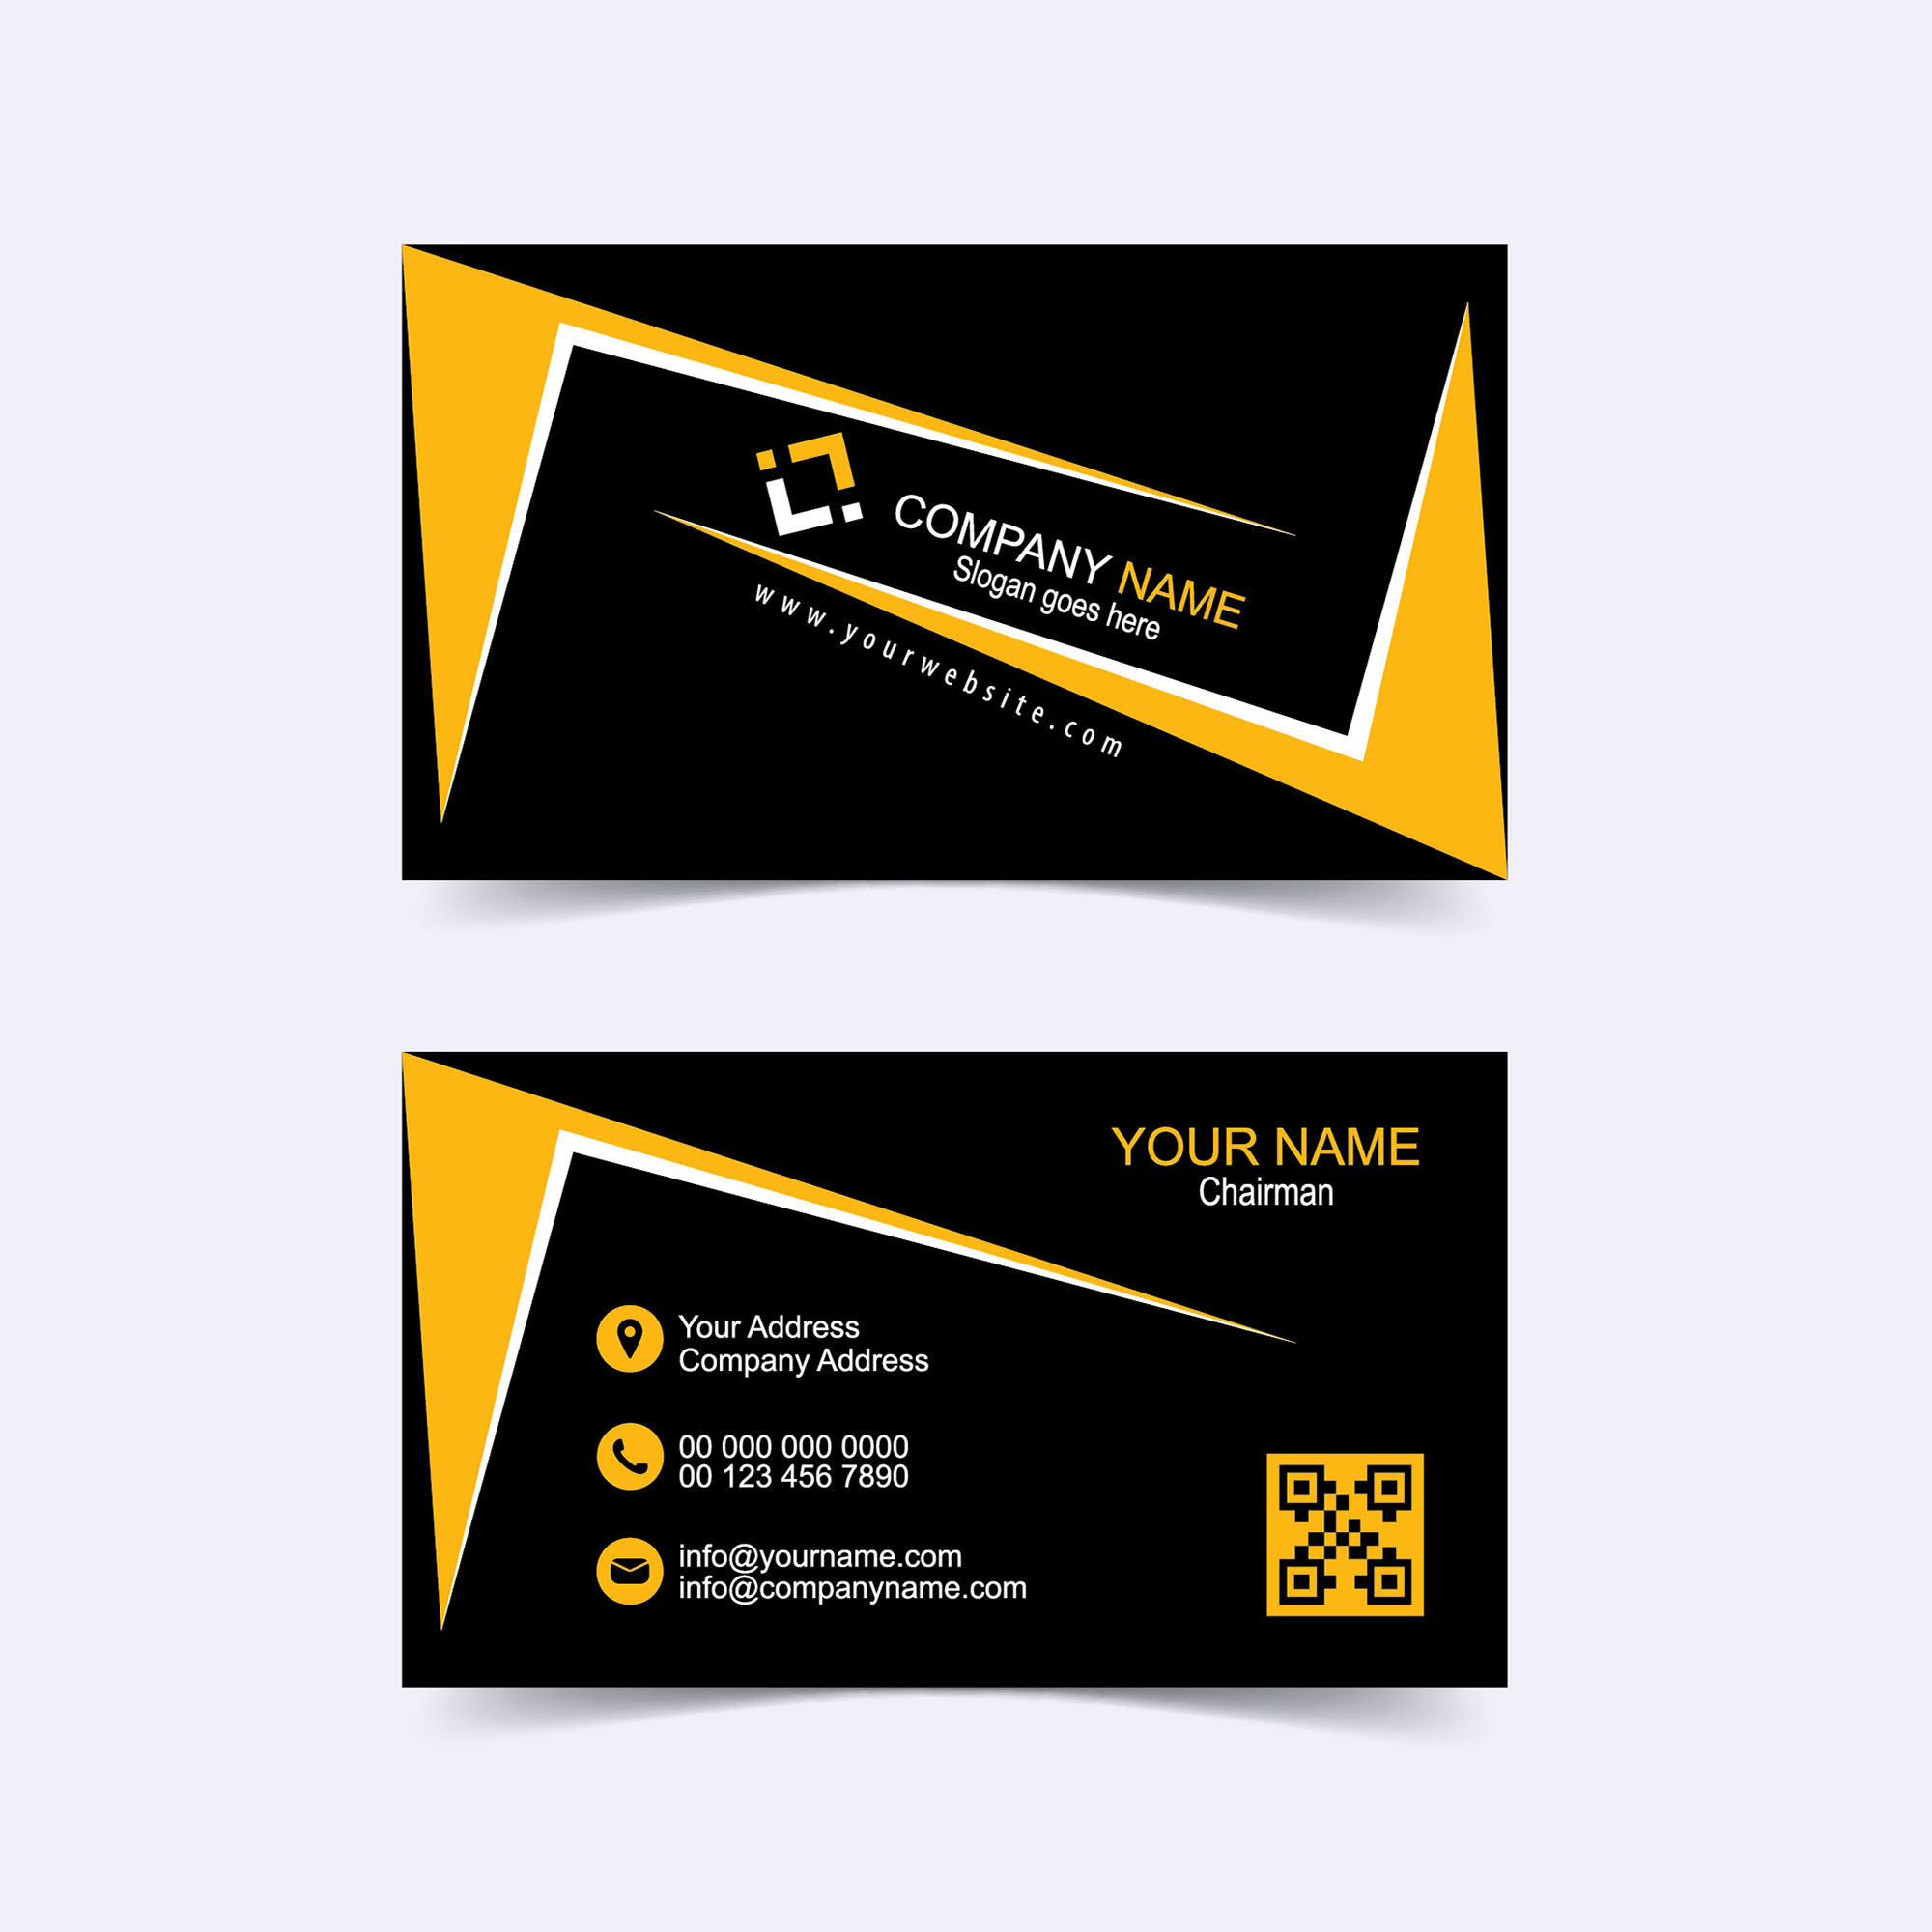 Modern business card template vector free download wisxi business card business cards business card design business card template design templates accmission